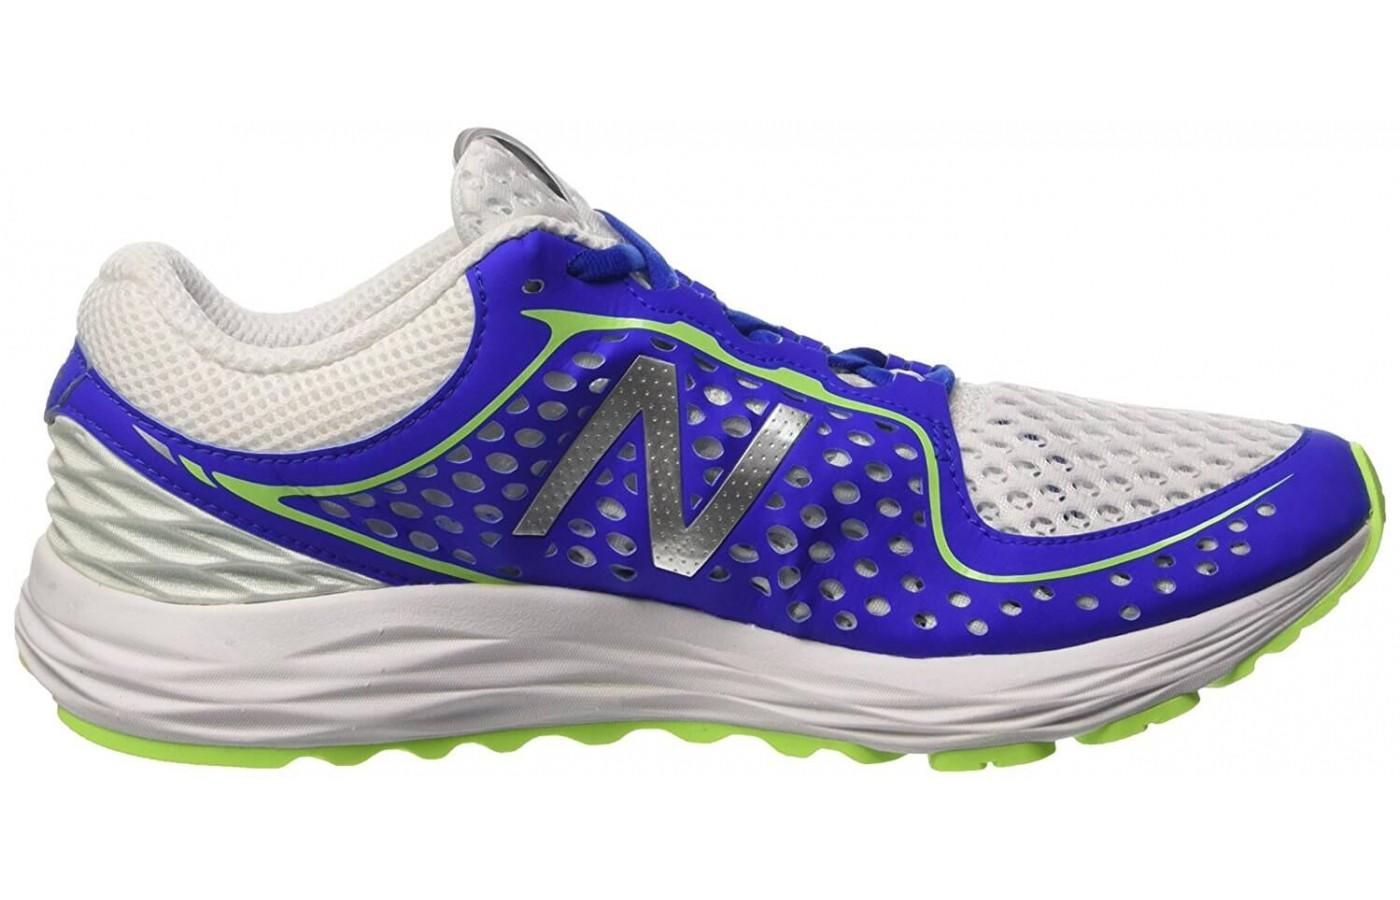 promo code 53afe c0377 New-Balance-Vazee-Breathe-Right-Side-slider1400x900.jpg